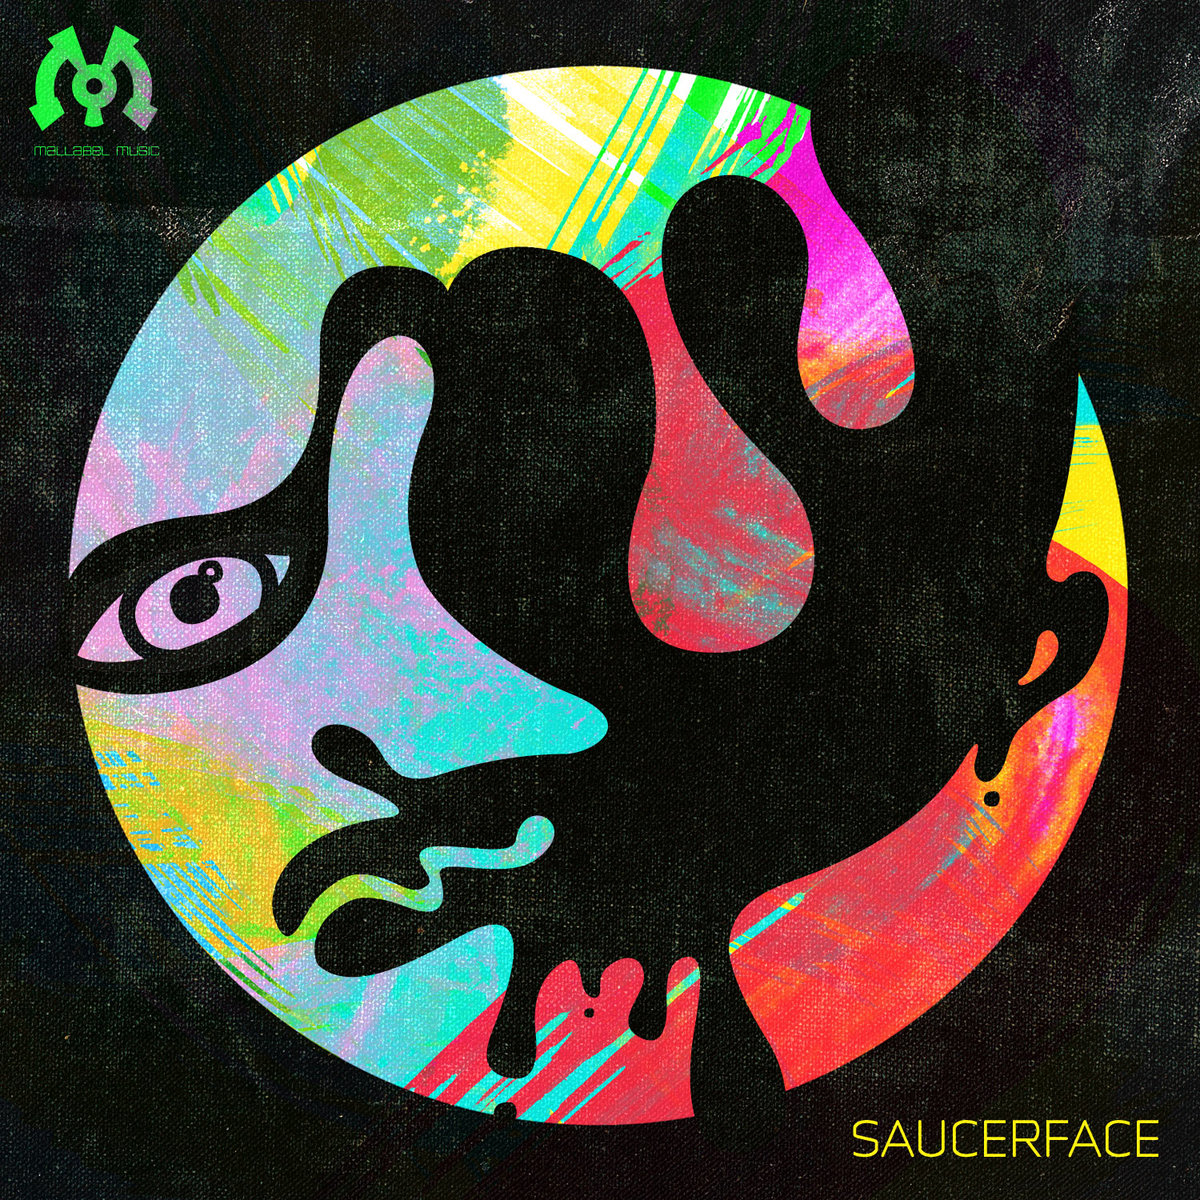 Fresh Young Minds - Paper Primate (Mochipet Remix) @ 'Various Artists - Saucerface' album (electronic, dubstep)